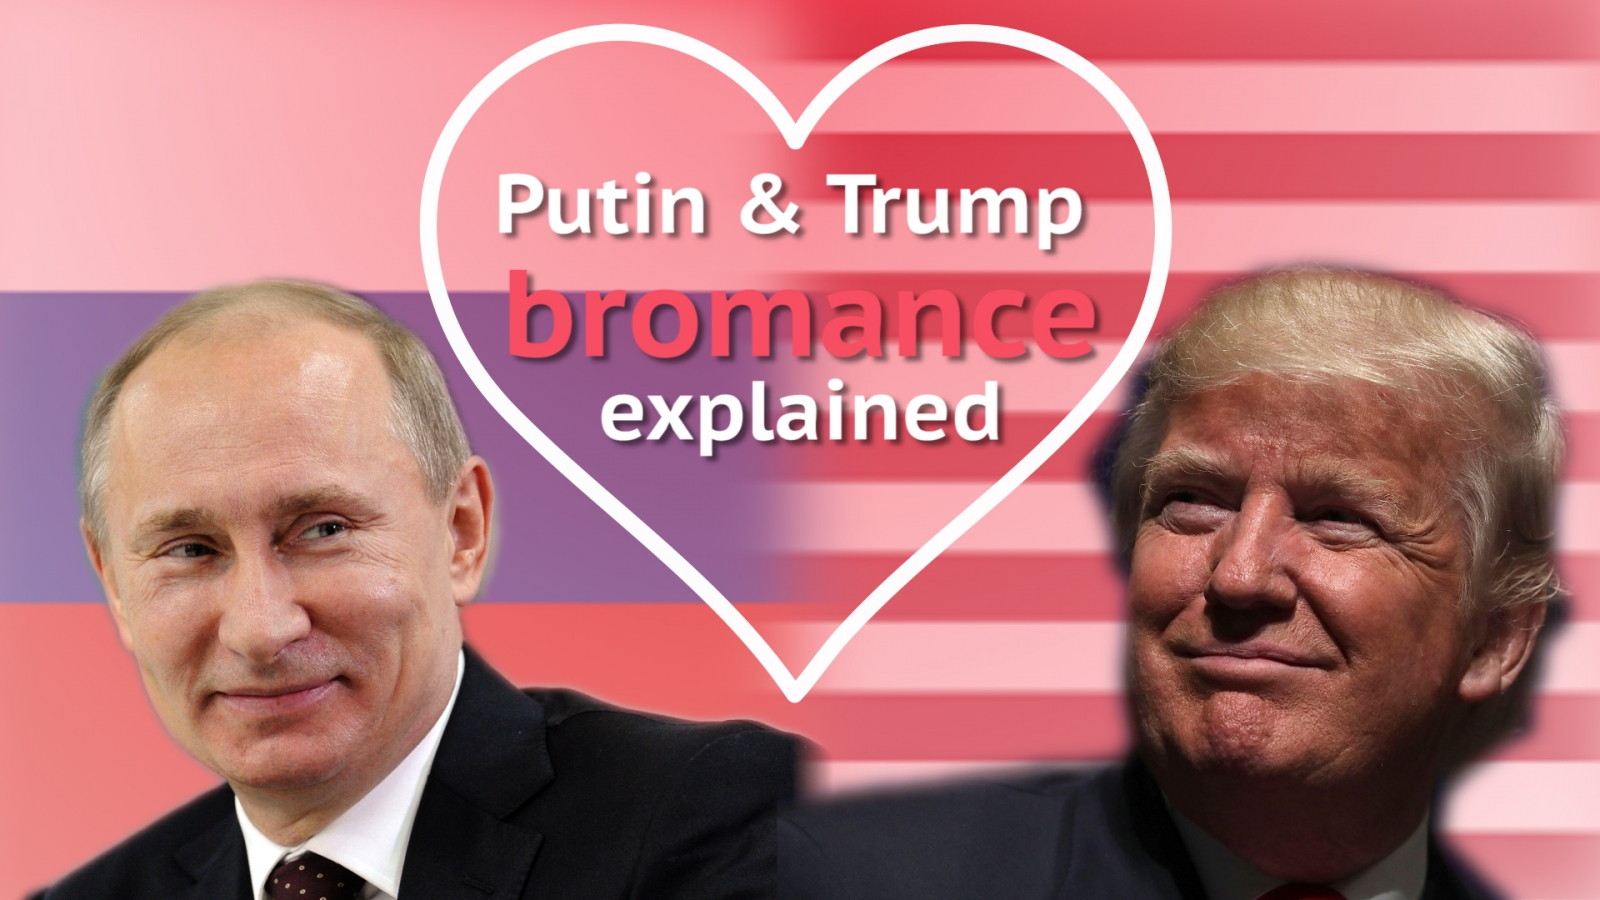 The history of Donald Trump and Vladimir Putin's bromance